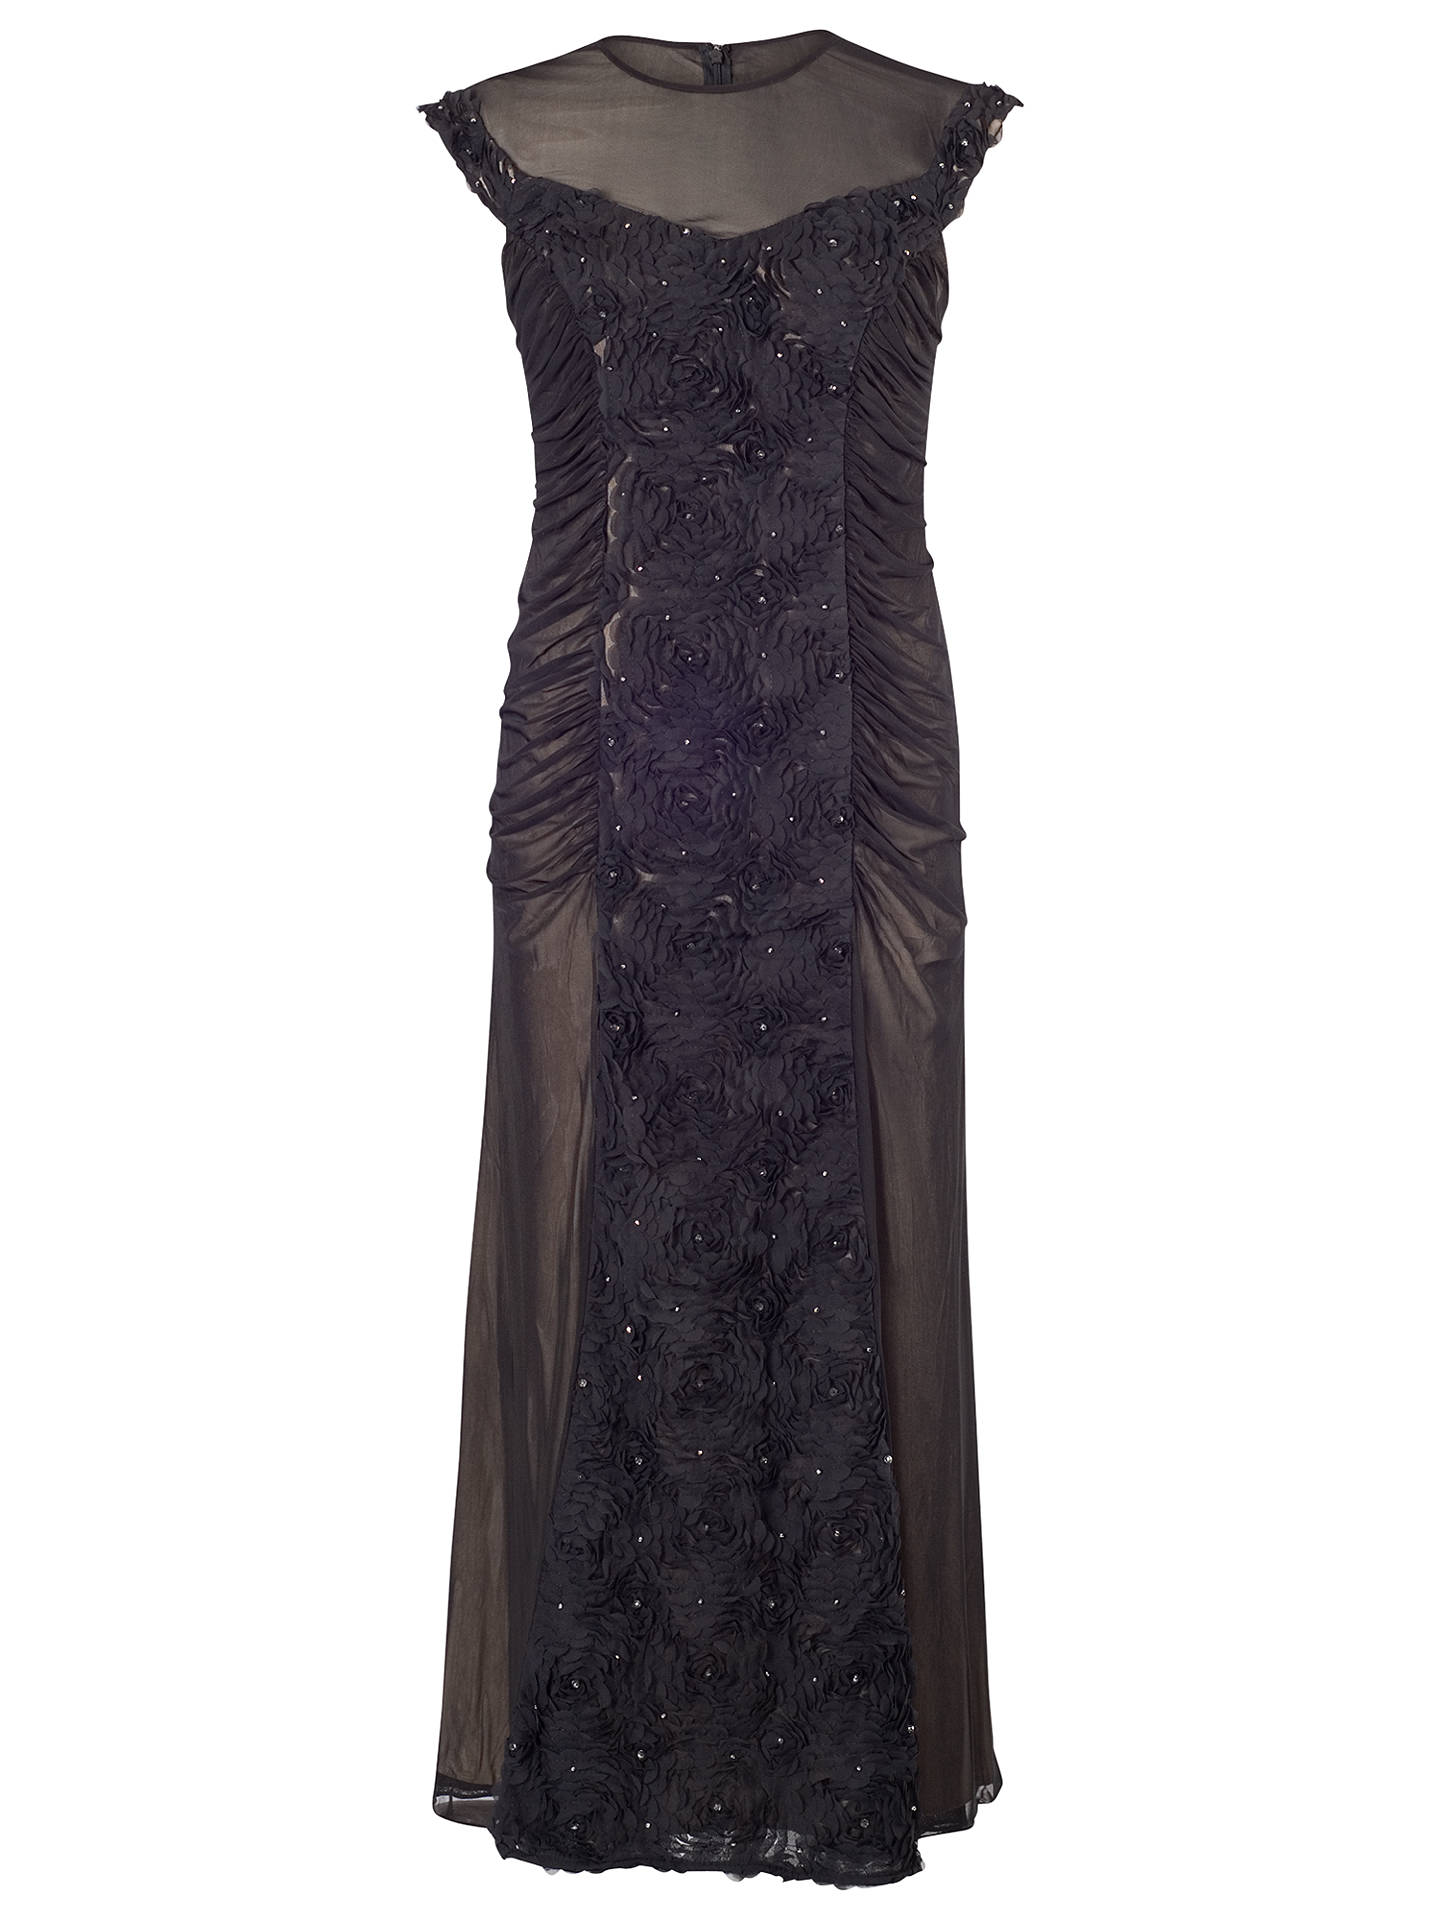 BuyChesca Floral Beaded Maxi Dress, Black, 14 Online at johnlewis.com